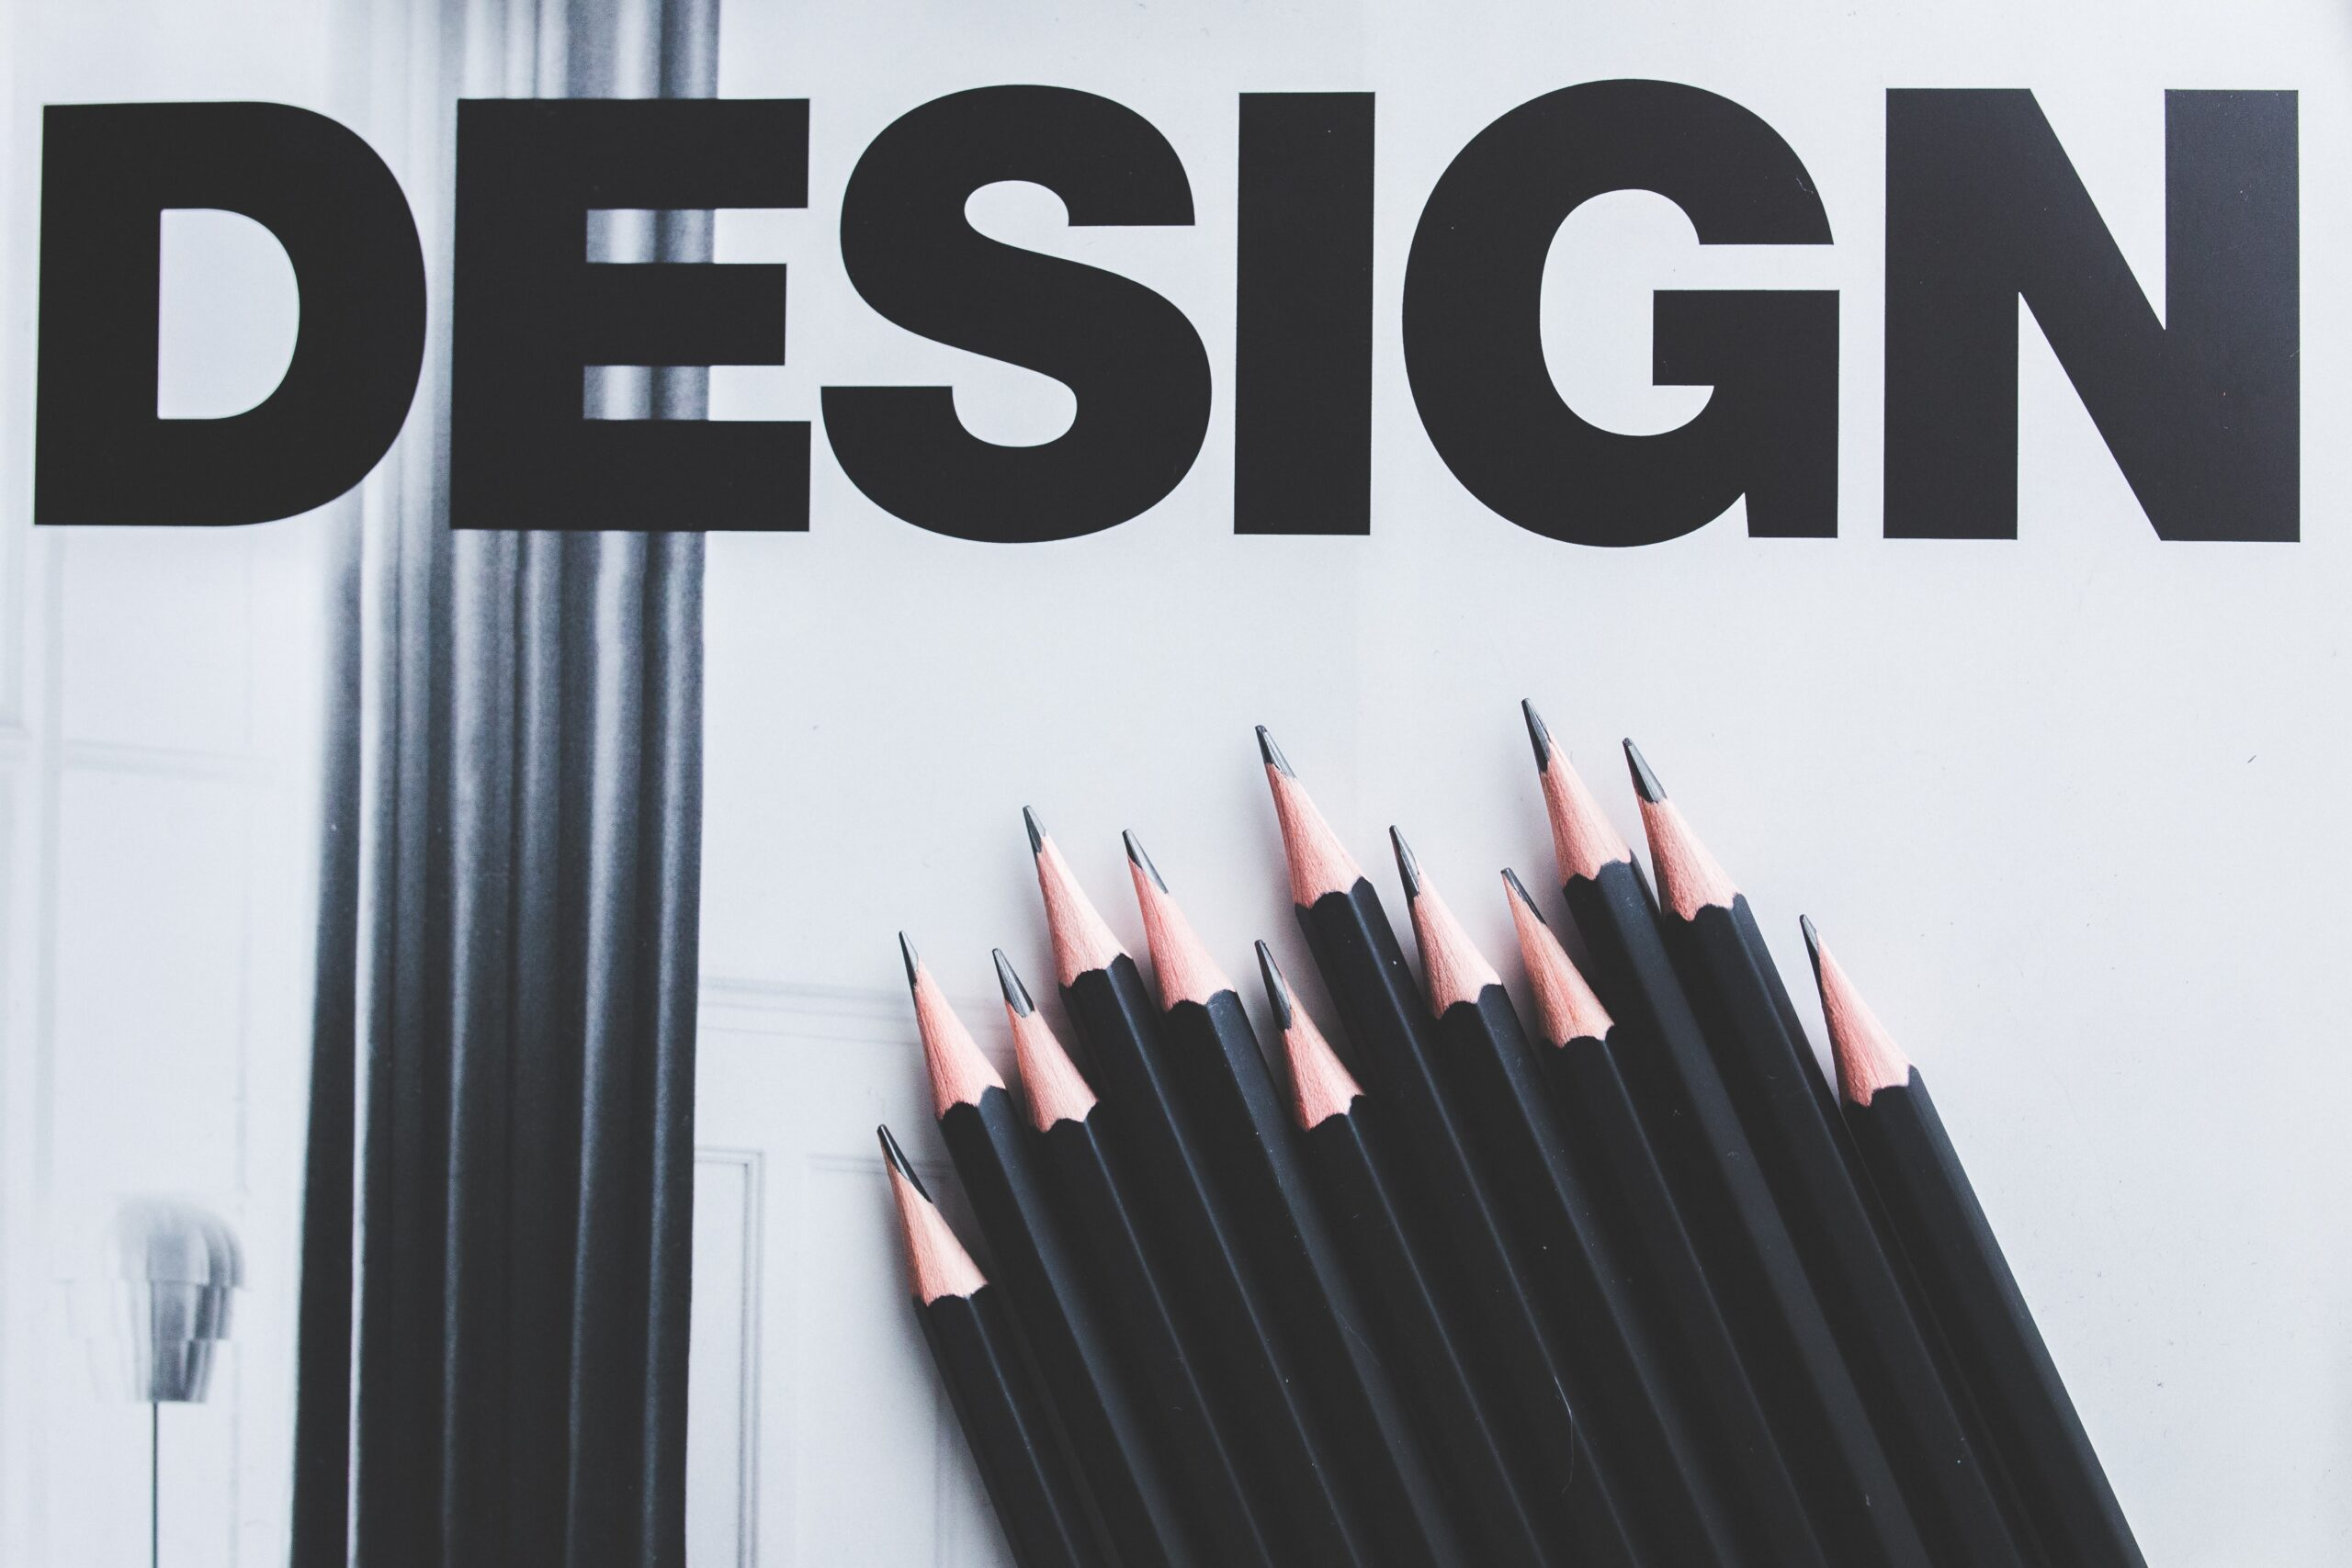 Beginners' Tips: 5 Characteristics of a Good Graphic Designer